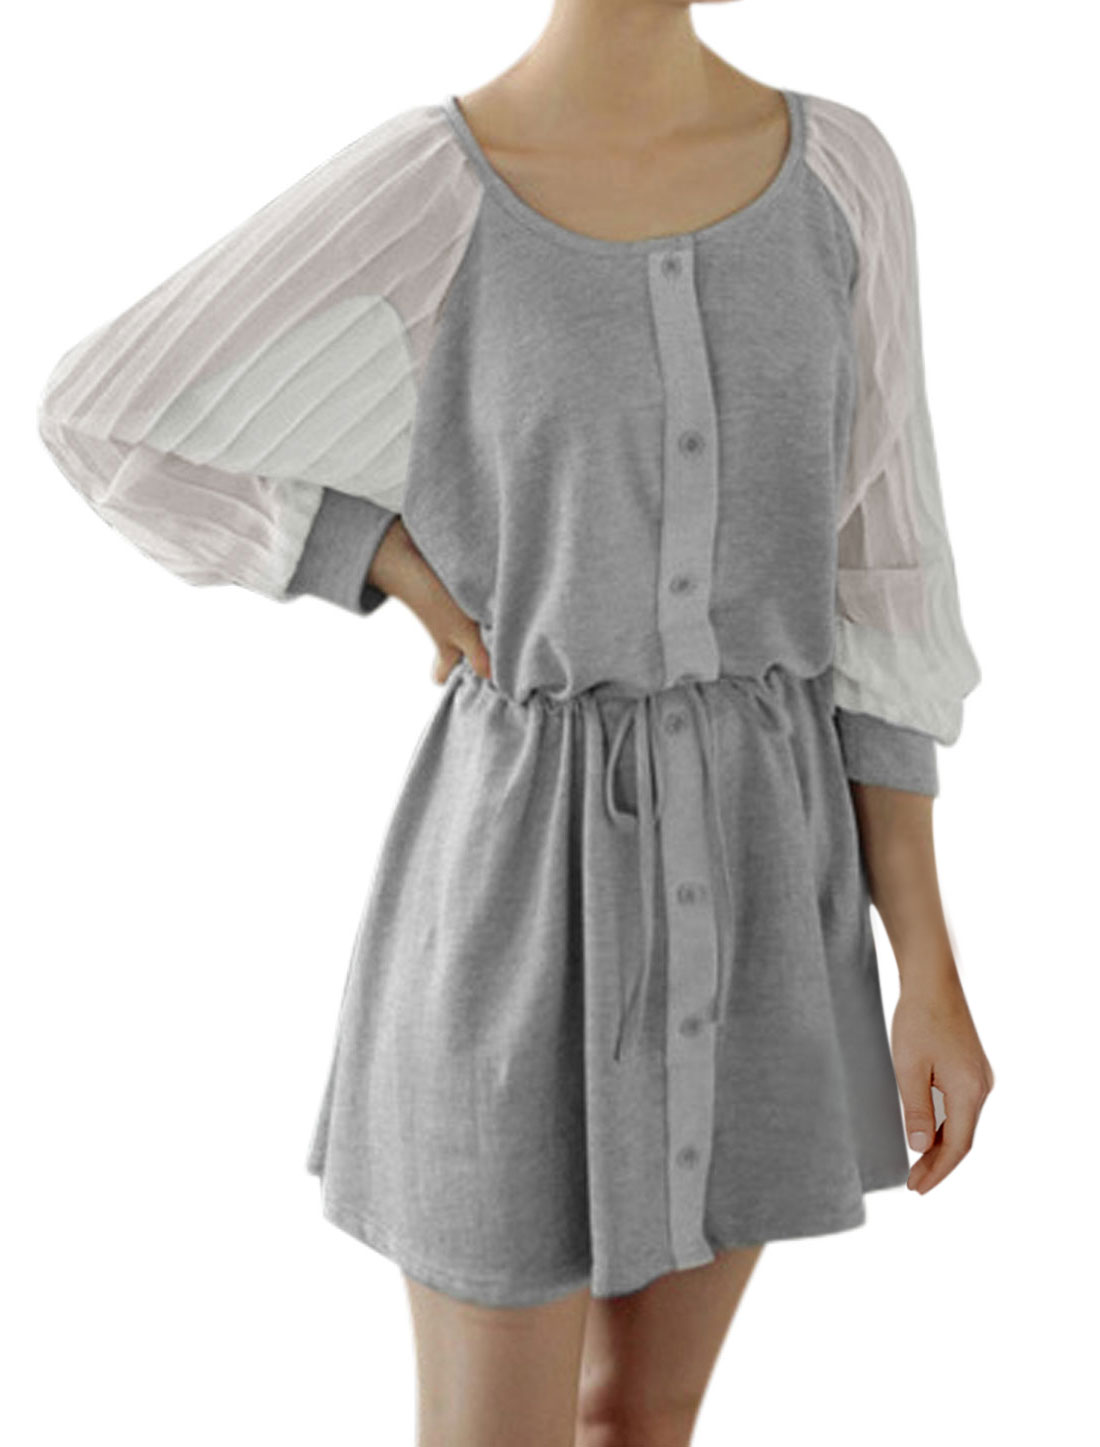 Lady Pullover Batwing Sleeve Single Breasted Casual Tunic Dress Light Gray XS